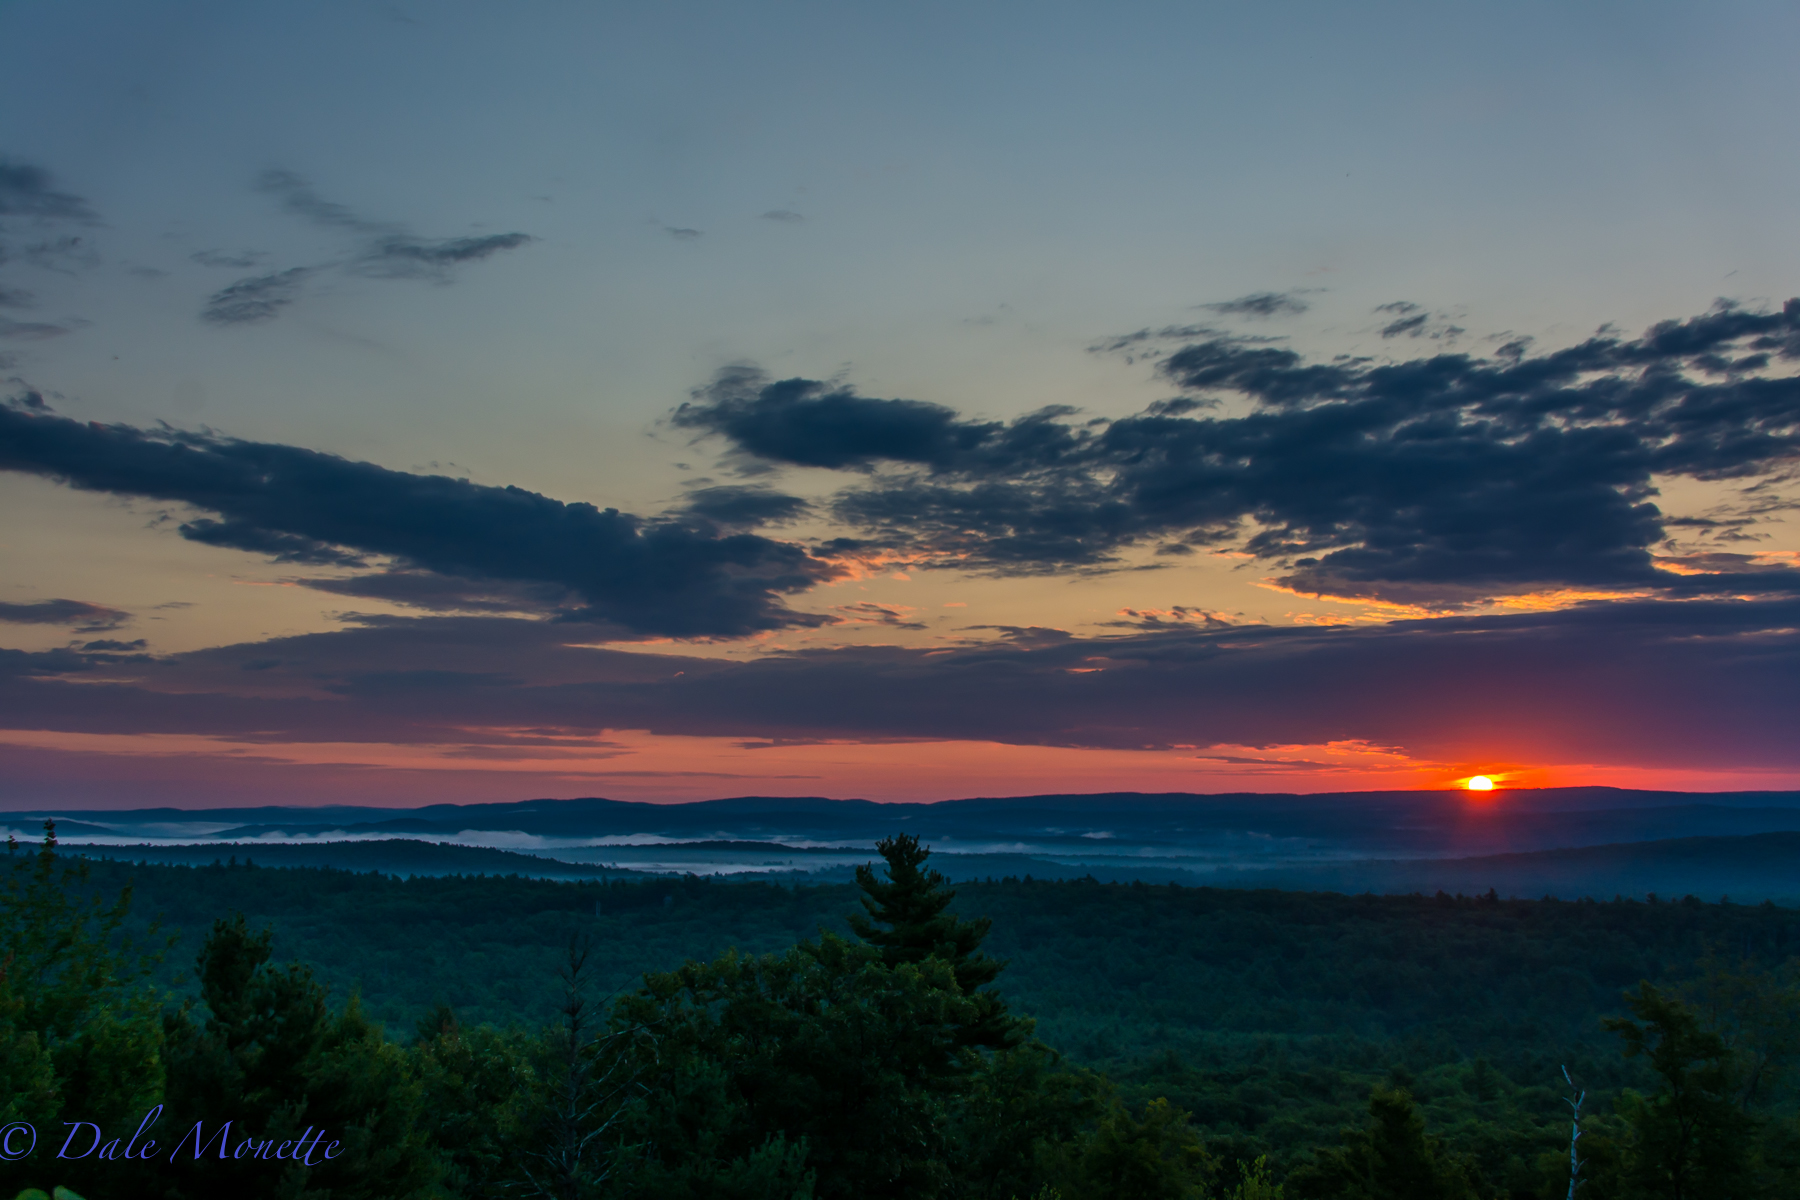 Sunrise looking towards Athol MA over north Quabbin area from the Route 202 lookout in New Salem.  8/15/15